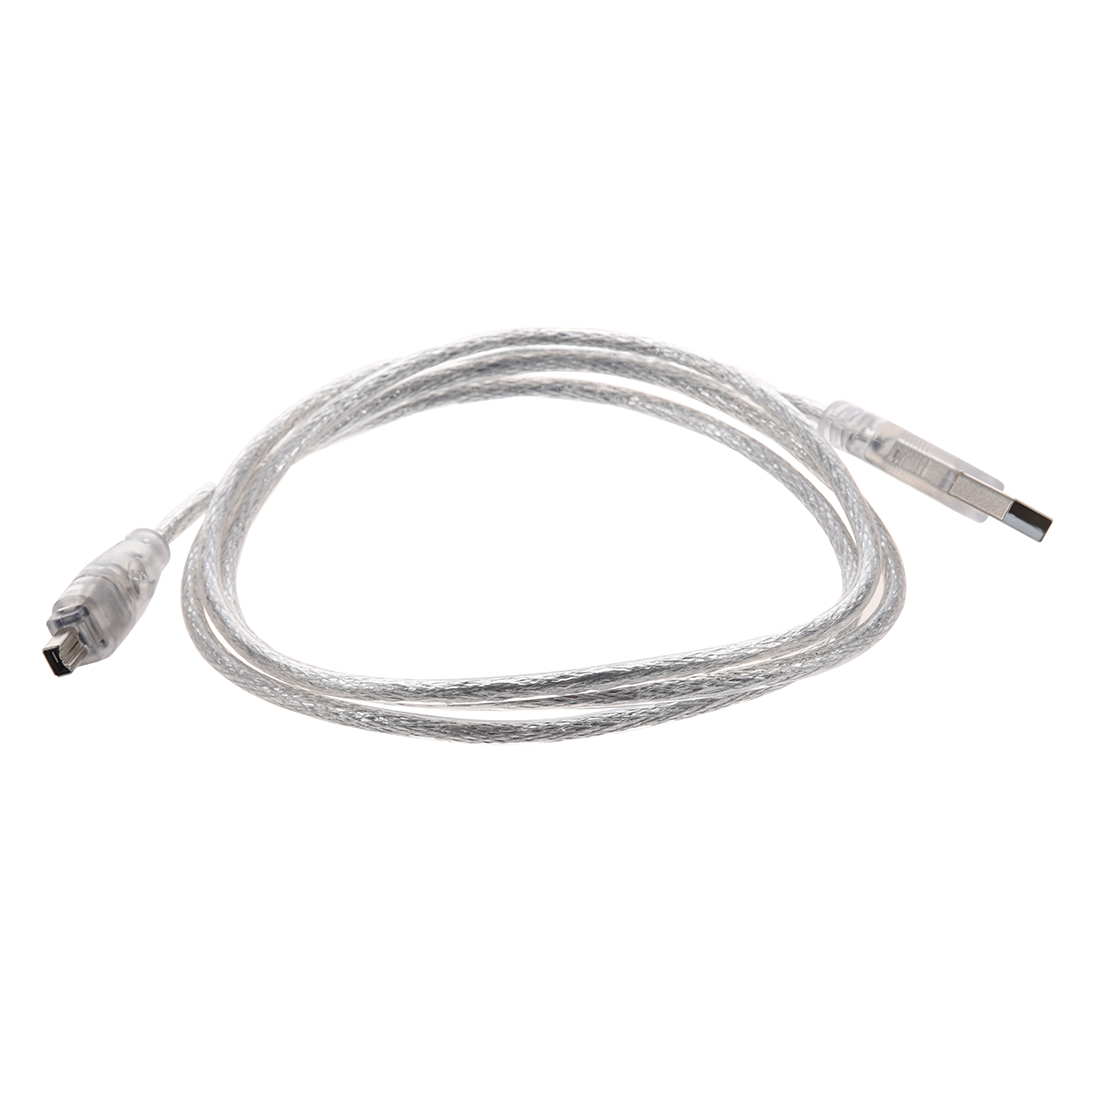 Affordable Usb 2 0 To Ieee Firewire 4 Pin 4 Feet Extension Cable For Digital Camera Or